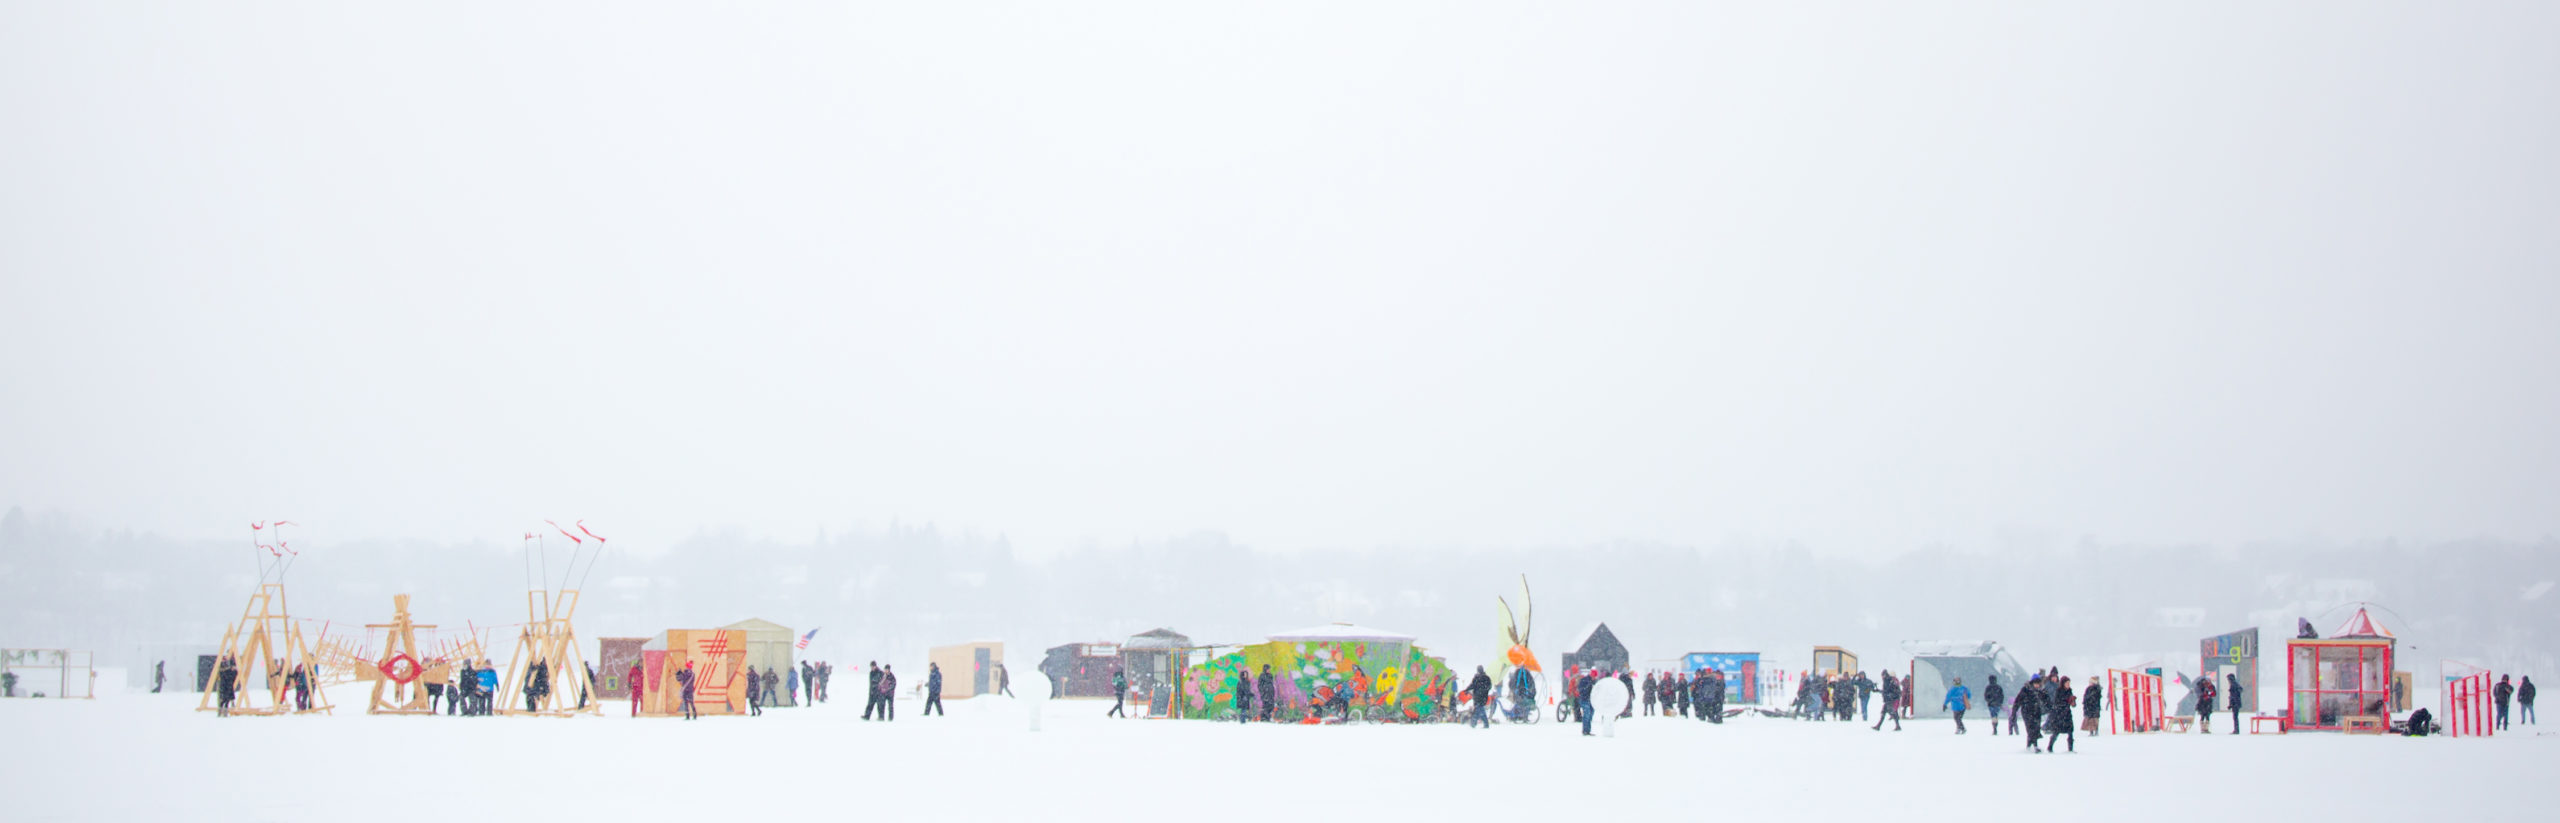 A landscape view of the Shanty Village, colorful and populated with lots of tiny figures, against the snowy grey-white sky.